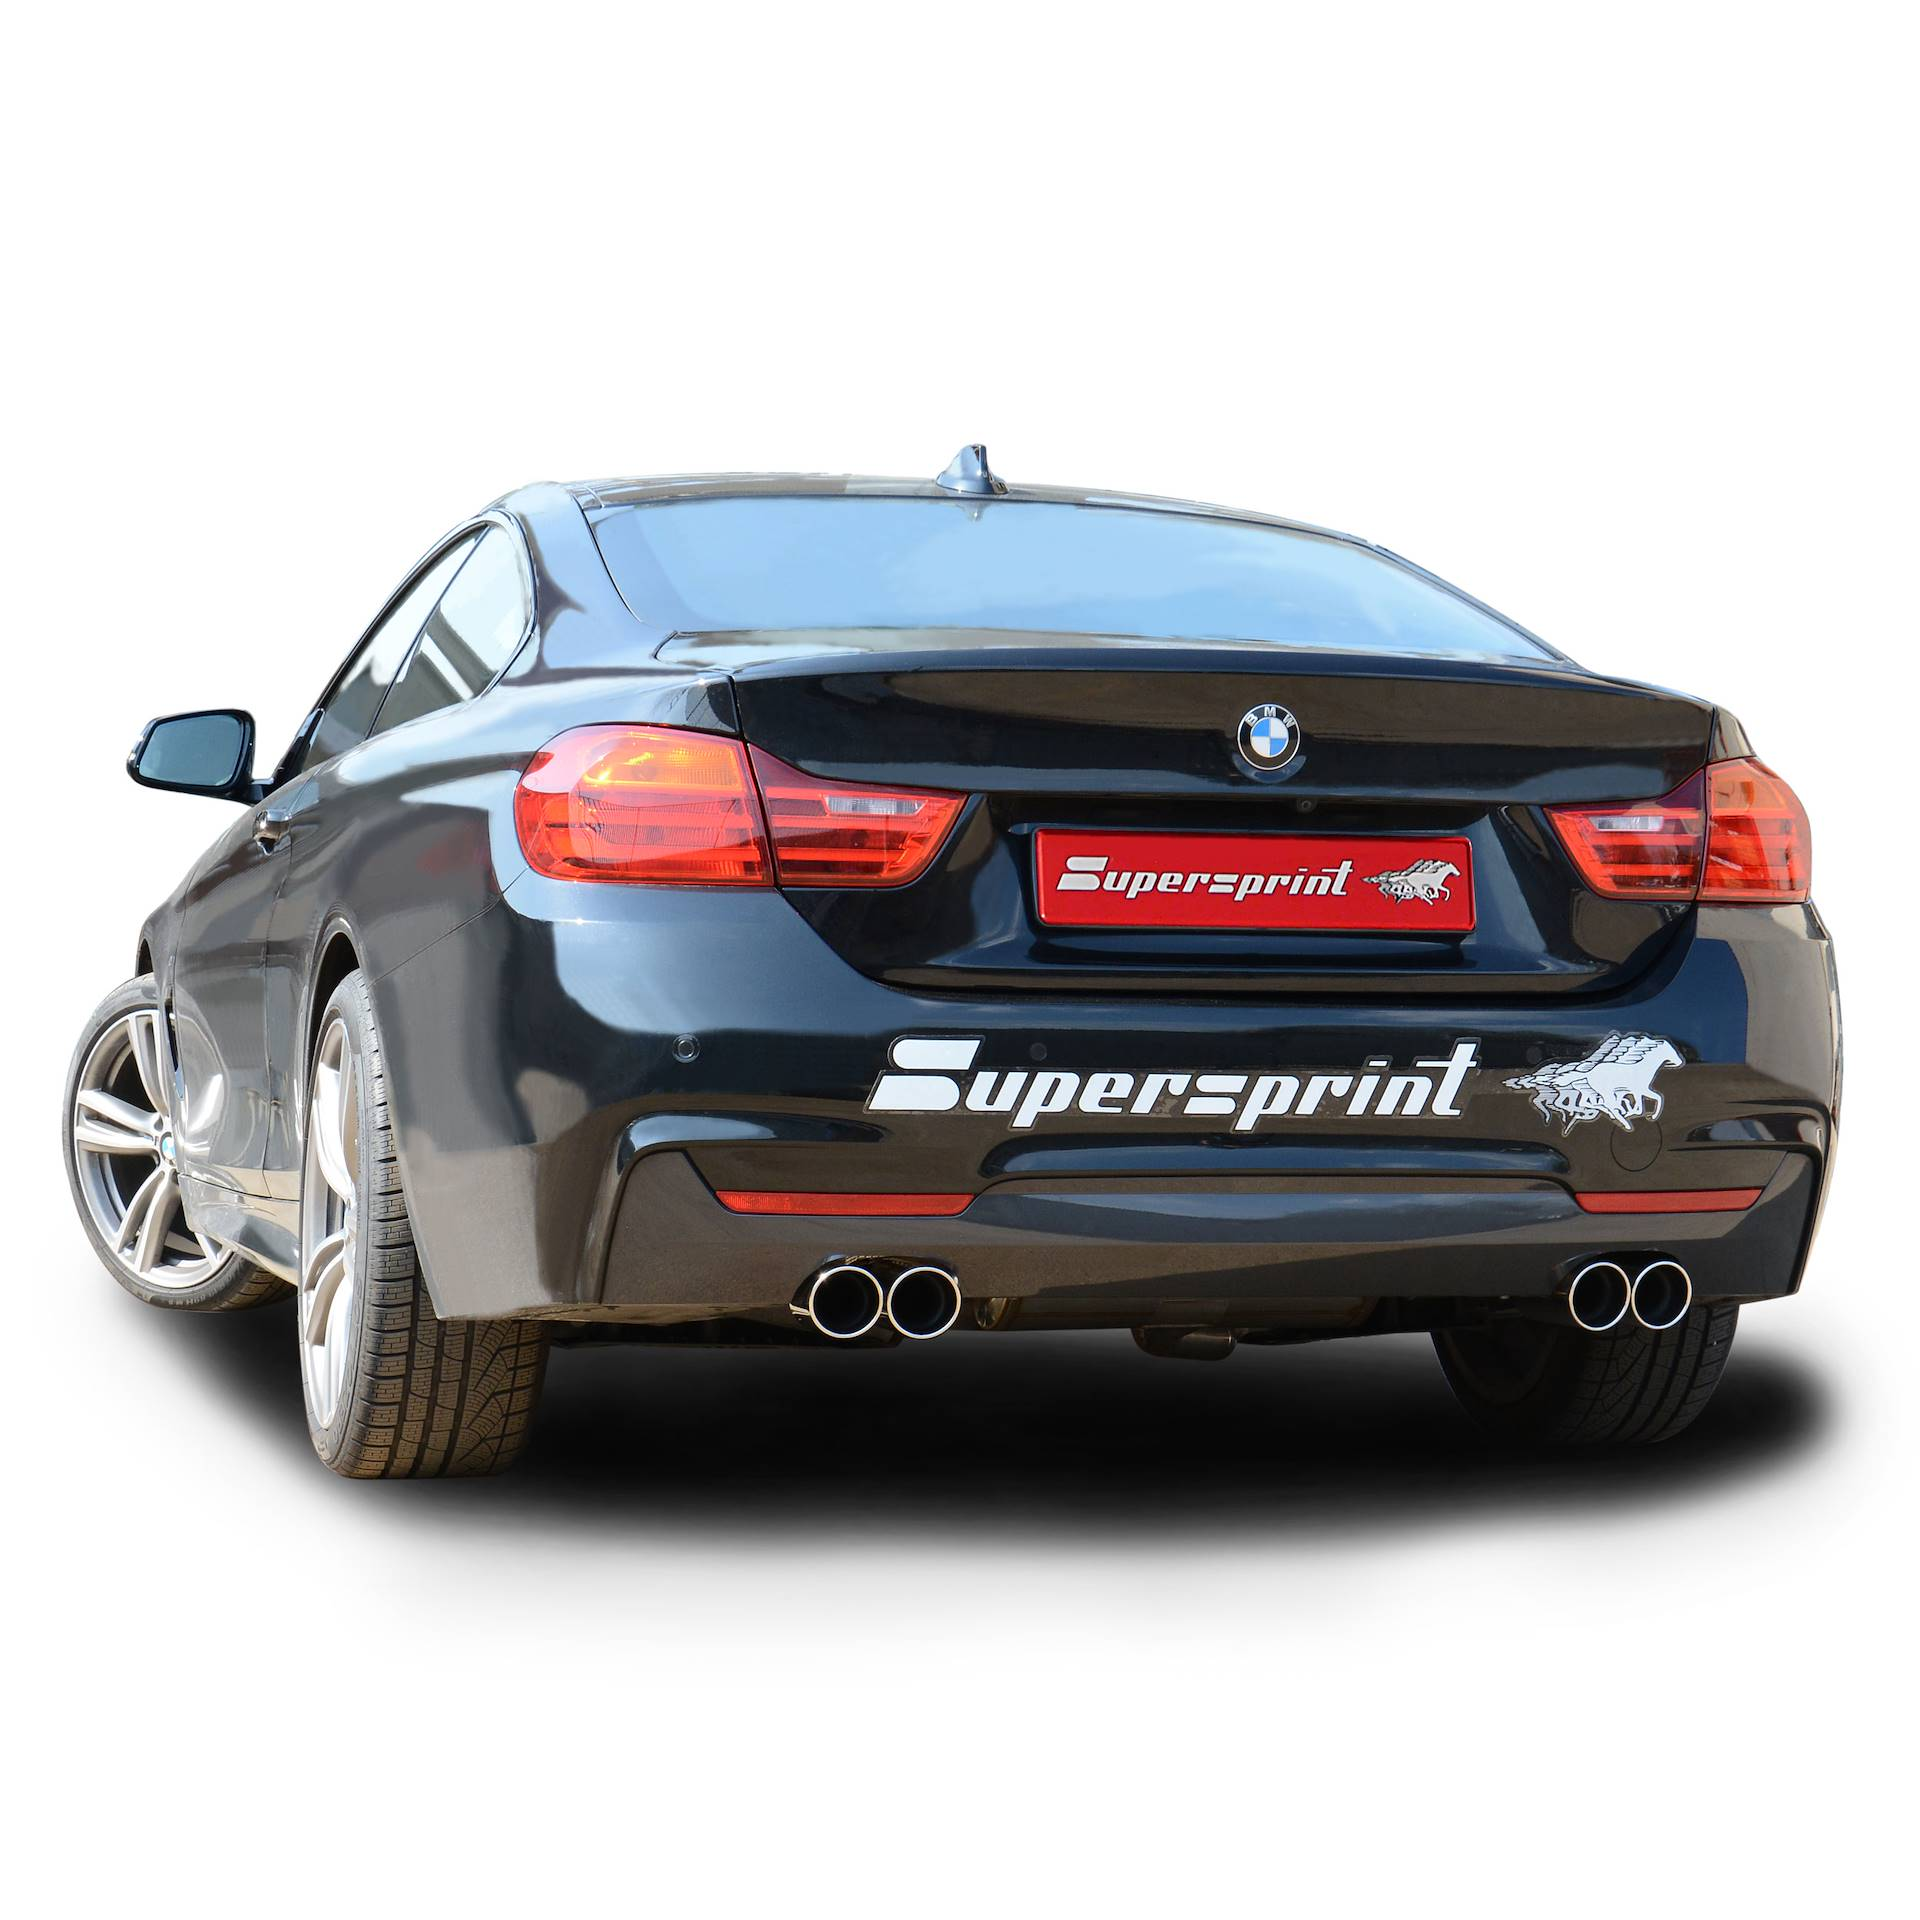 BMW - BMW F32 Coupè 425d (N47 - 218 Hp) 2013 -> 2015